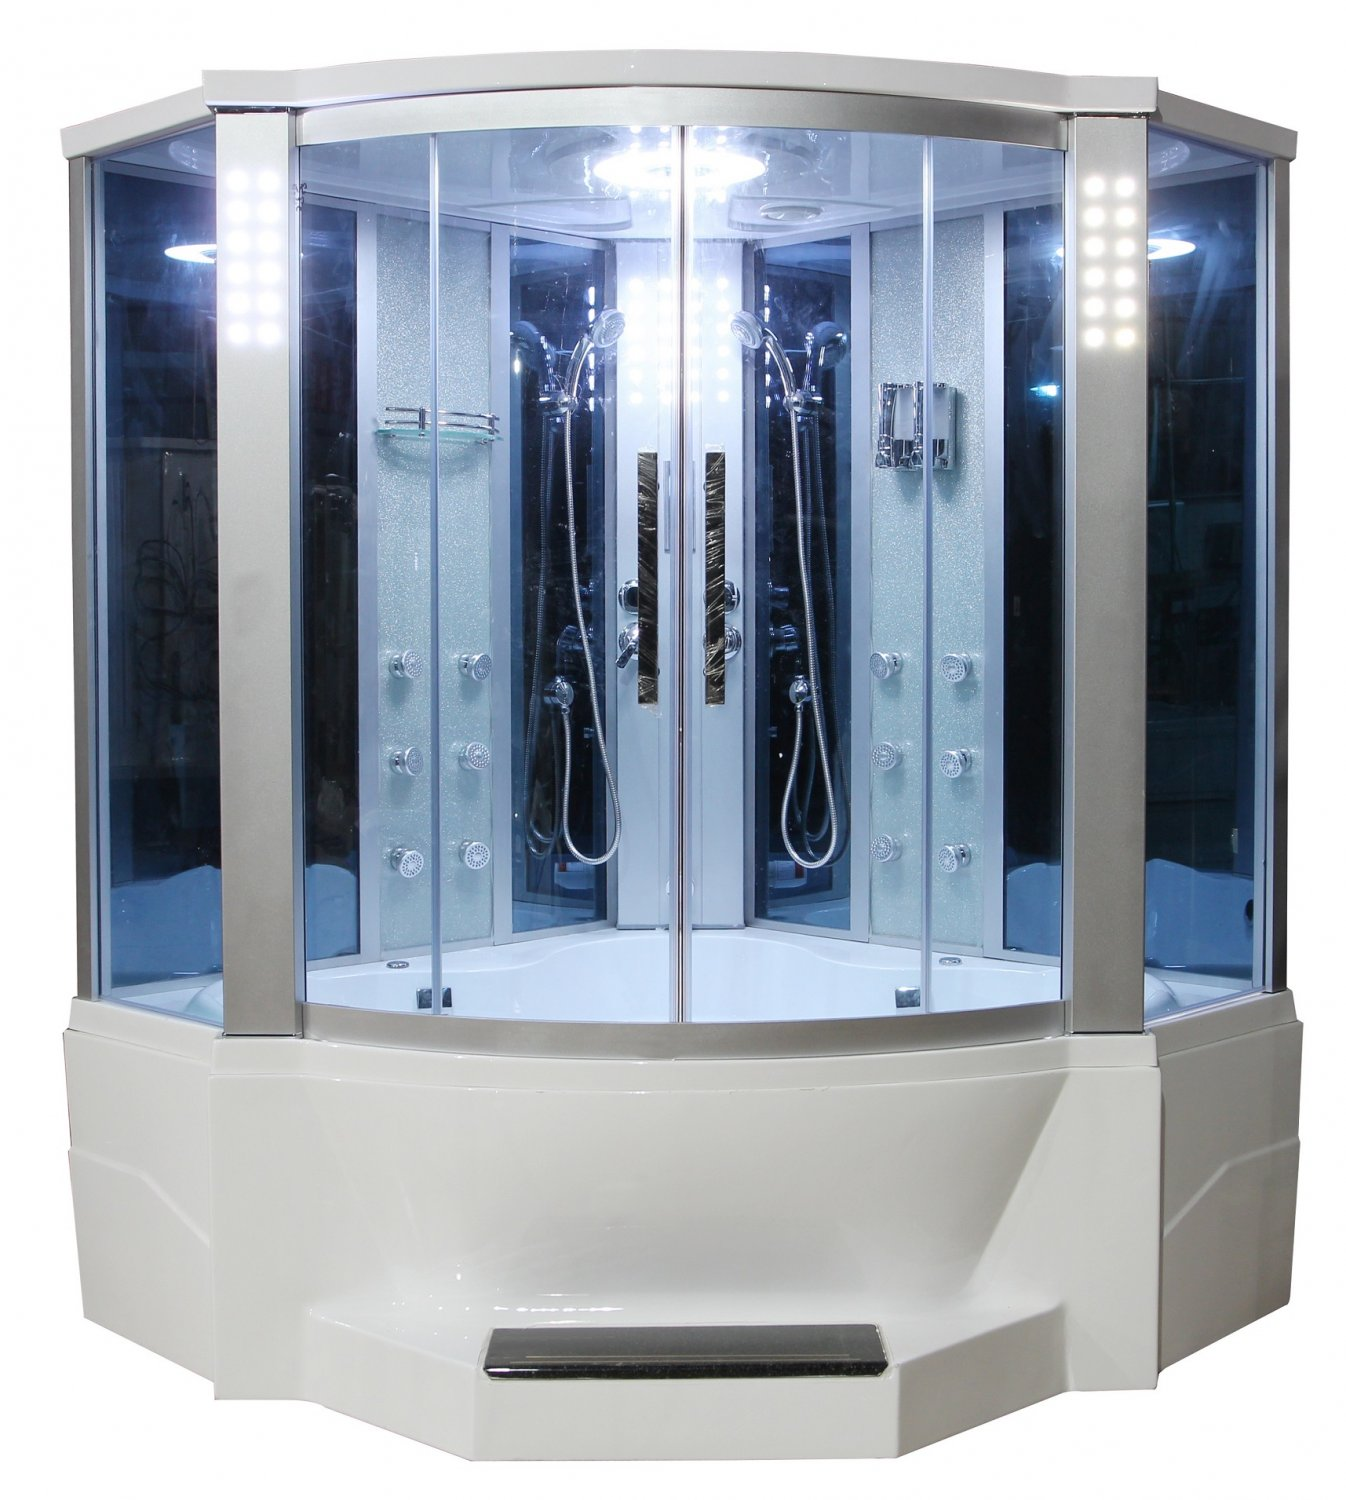 Whirlpool Bath And Shower Combo 66 Quot Eagle Bath Ws 701 Steam Shower Sauna Encloures W